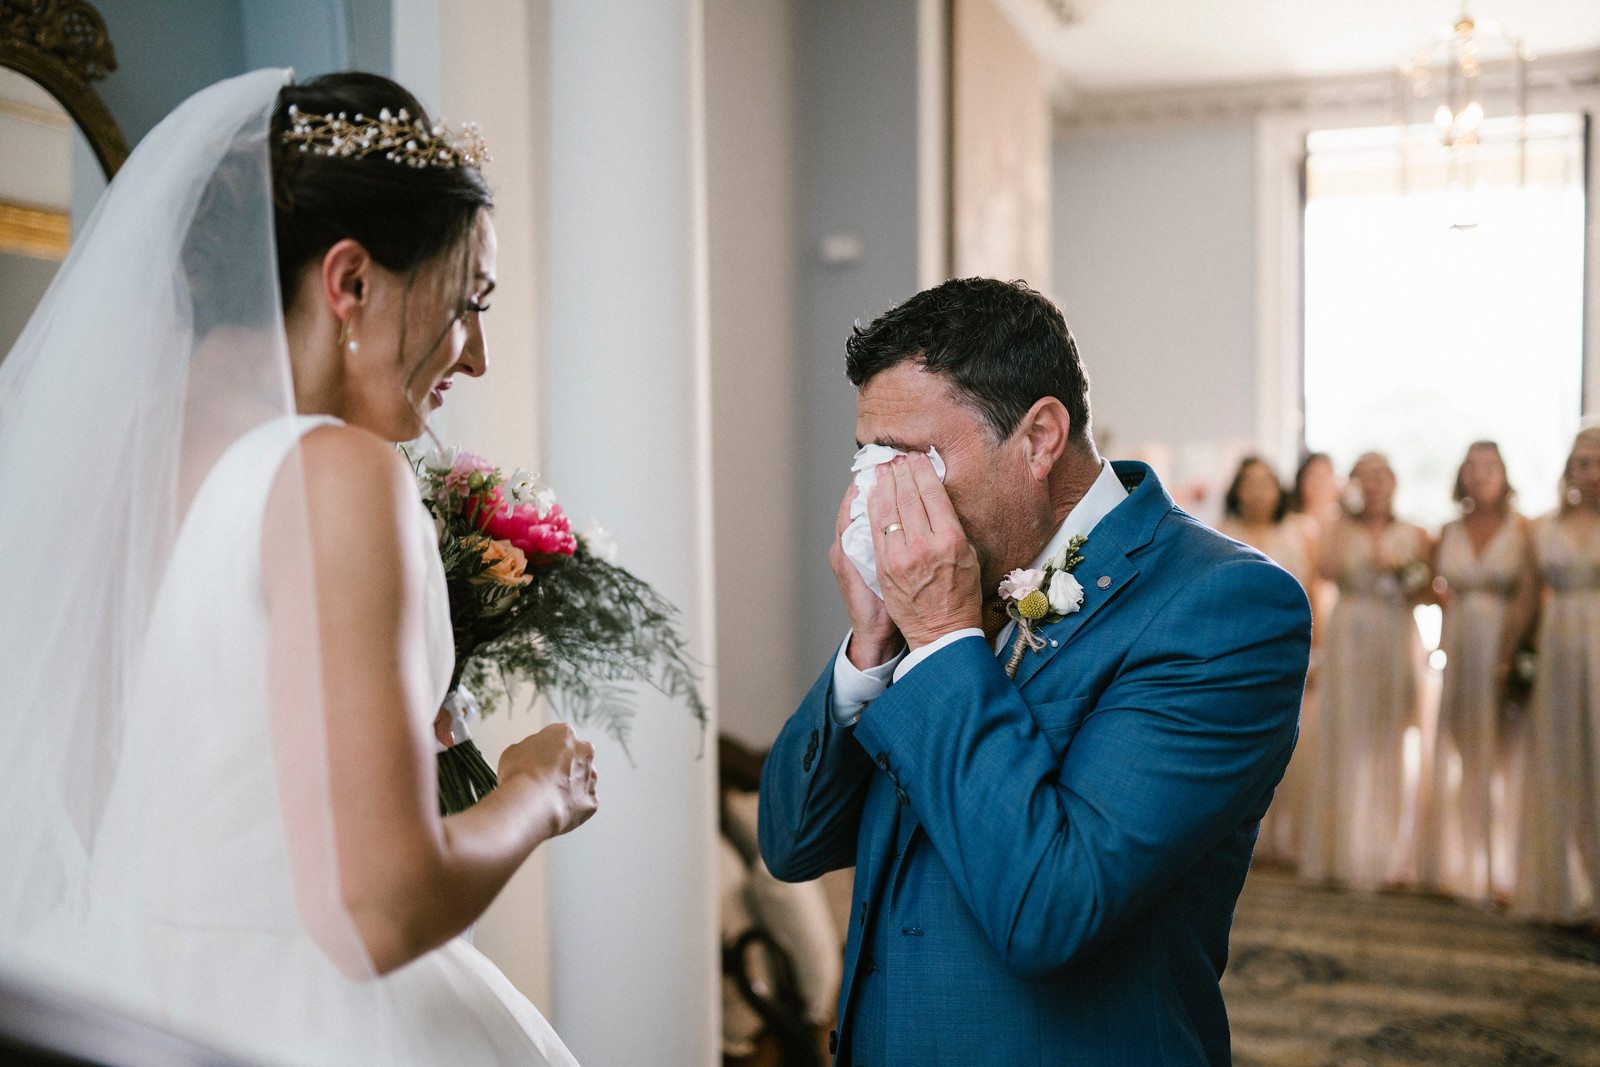 A father and daughter wedding image